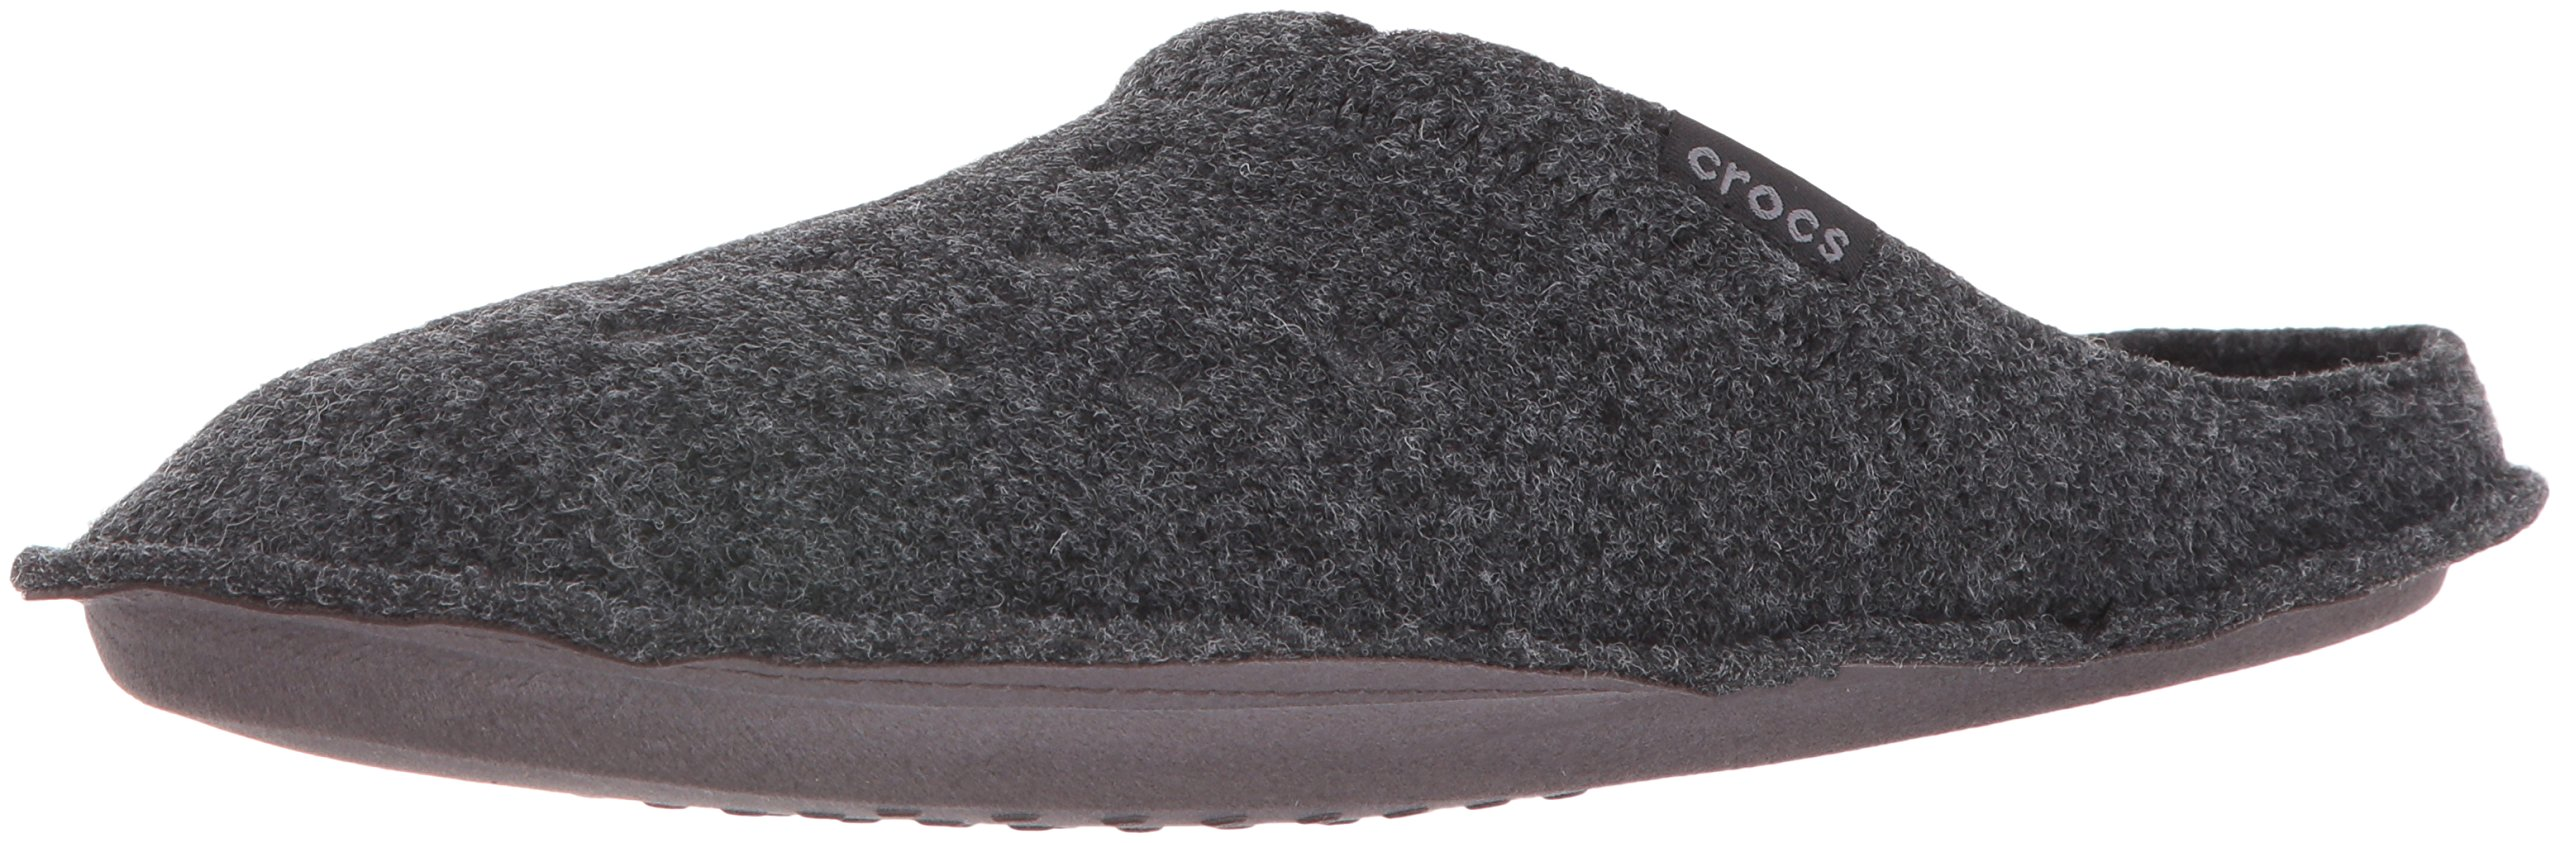 Crocs Unisex Classic Slipper Mule, Black/Black, 12 US Men / 14 US Women by Crocs